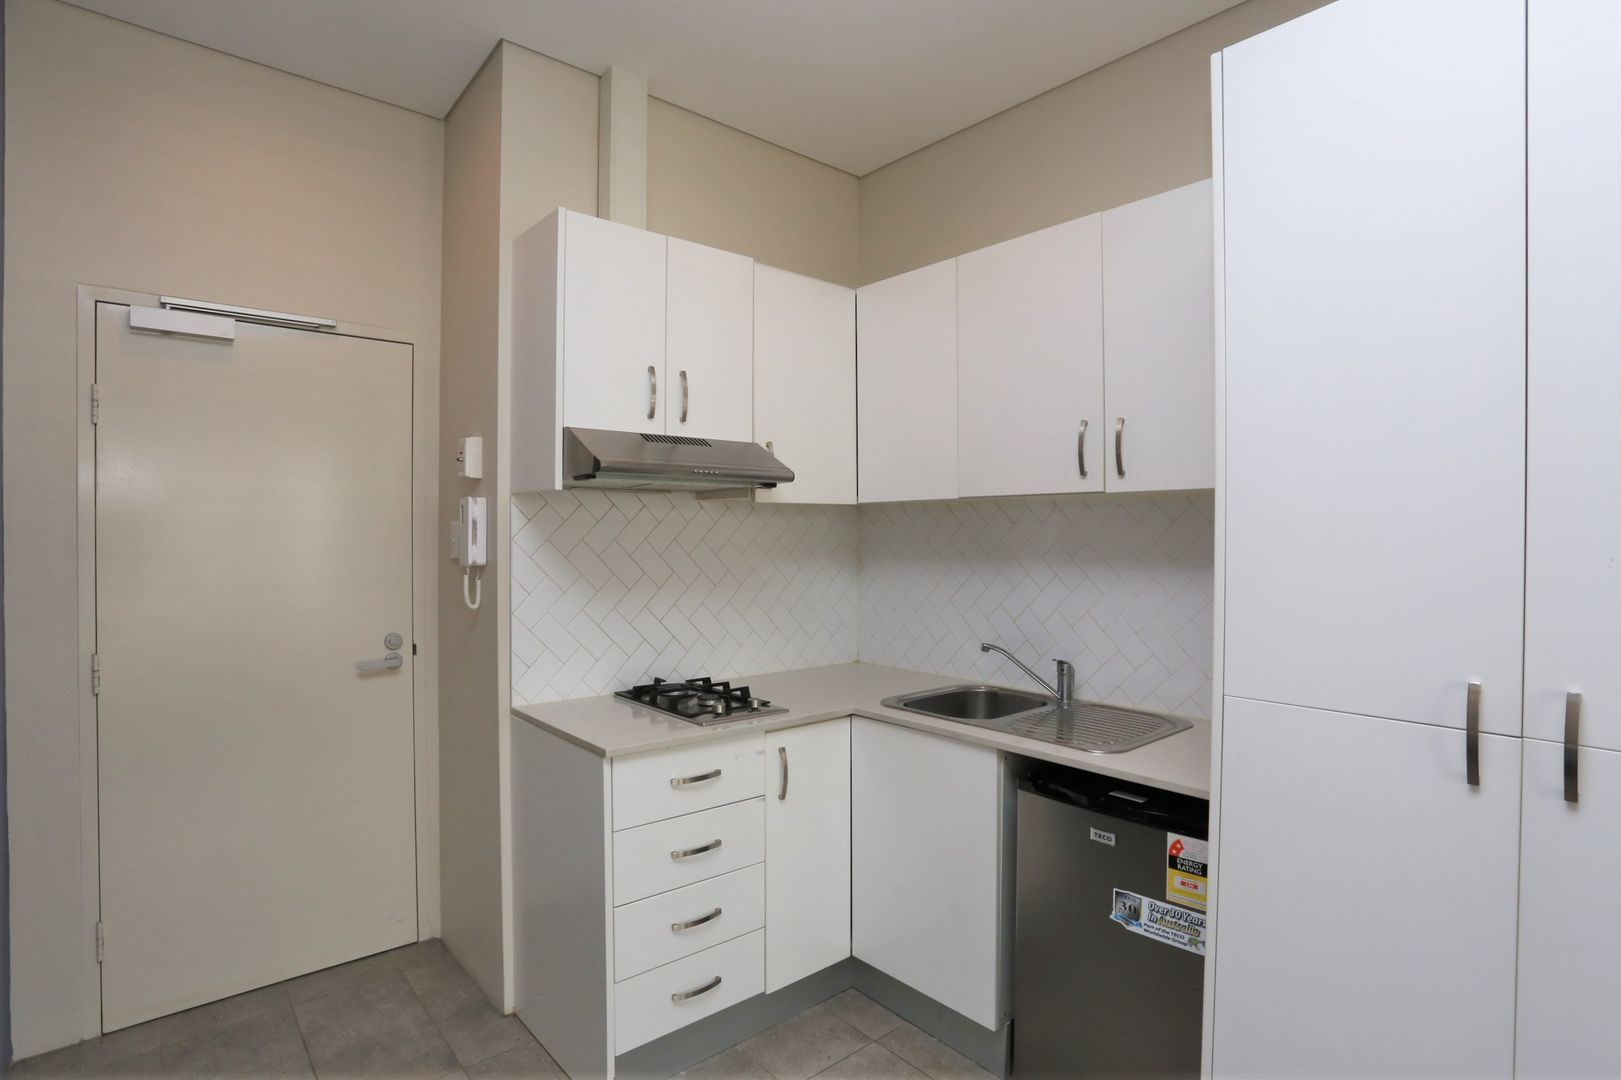 7/30 Blenheim St, Randwick NSW 2031, Image 2